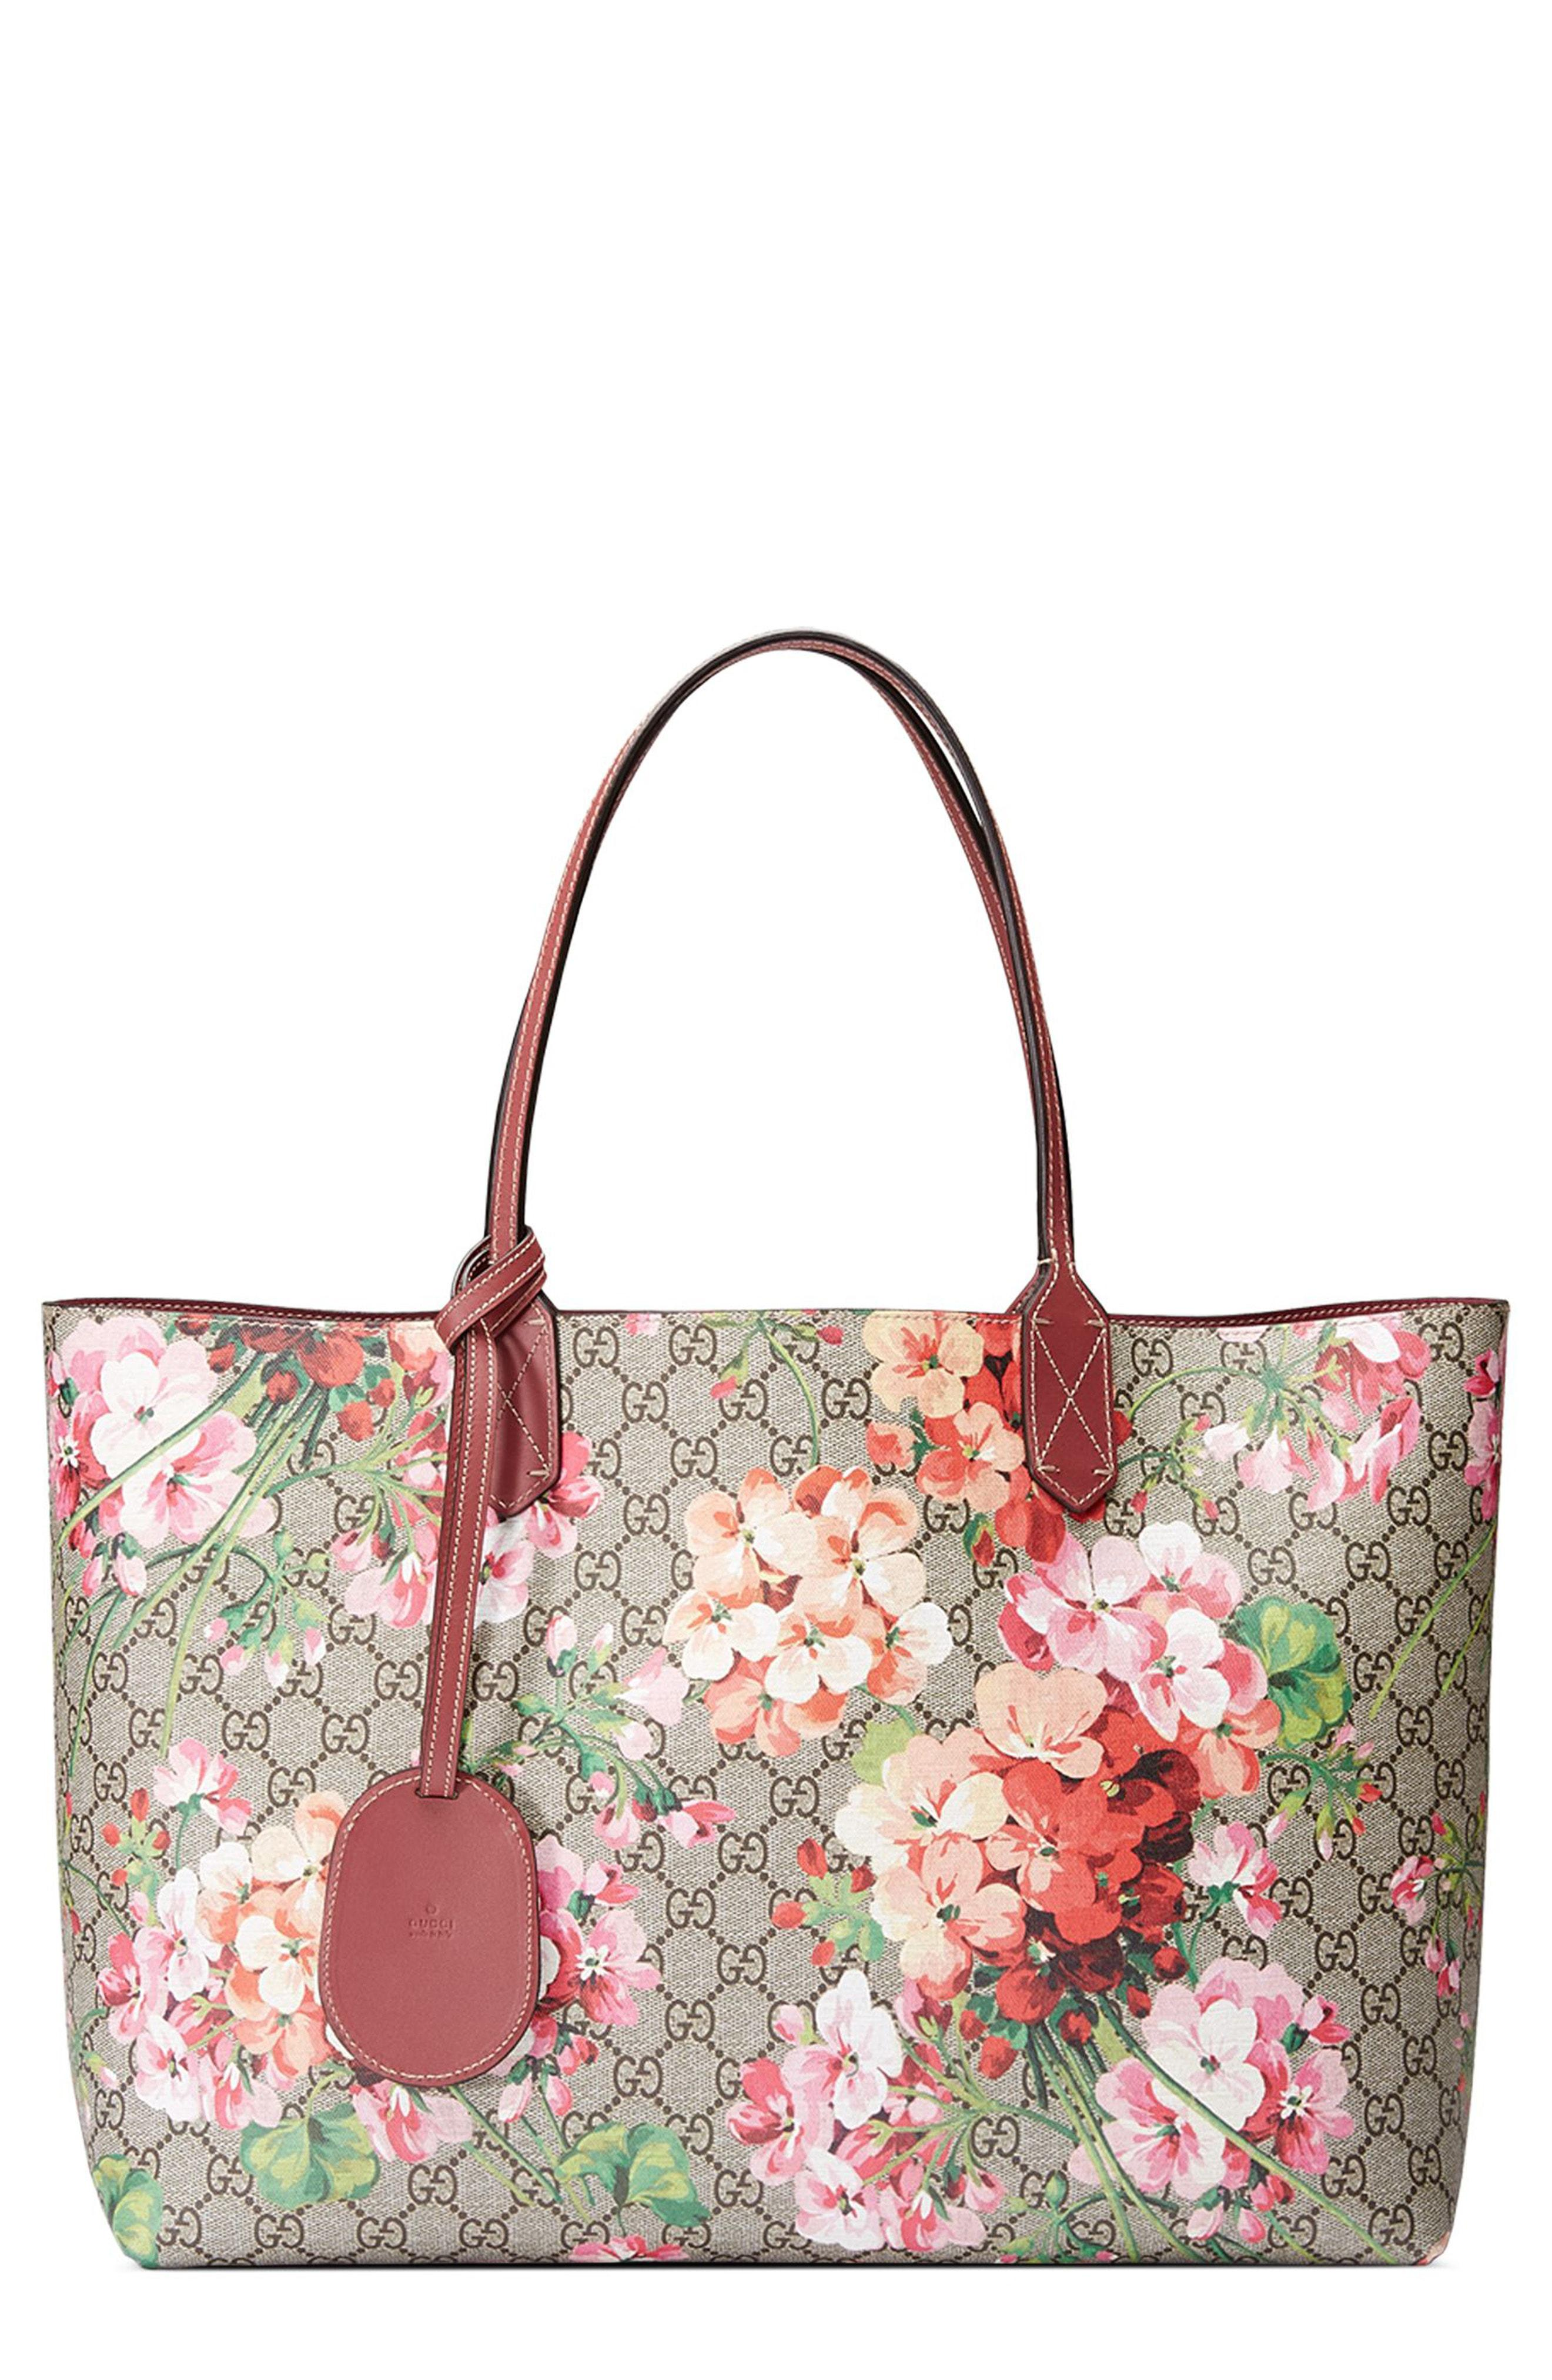 88a8d1c0bea Lyst - Gucci Medium Gg Blooms Reversible Canvas   Leather Tote in Red